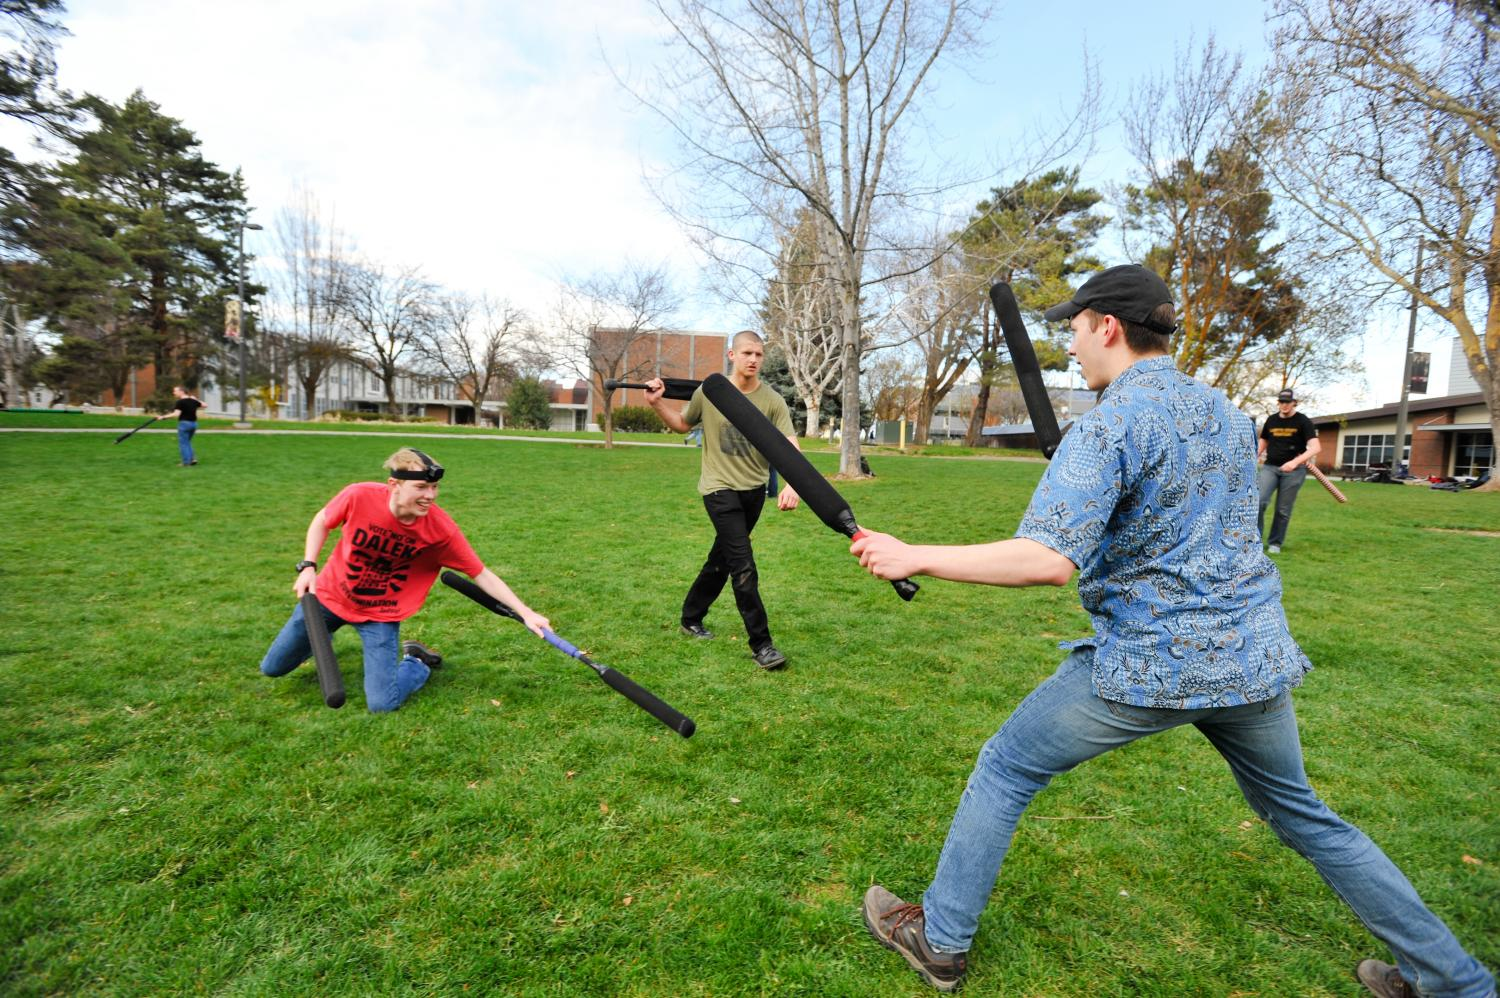 Members of the Boffering Club spar each other by the Recreation Center. They hope to be recognized as a club by fall quarter.